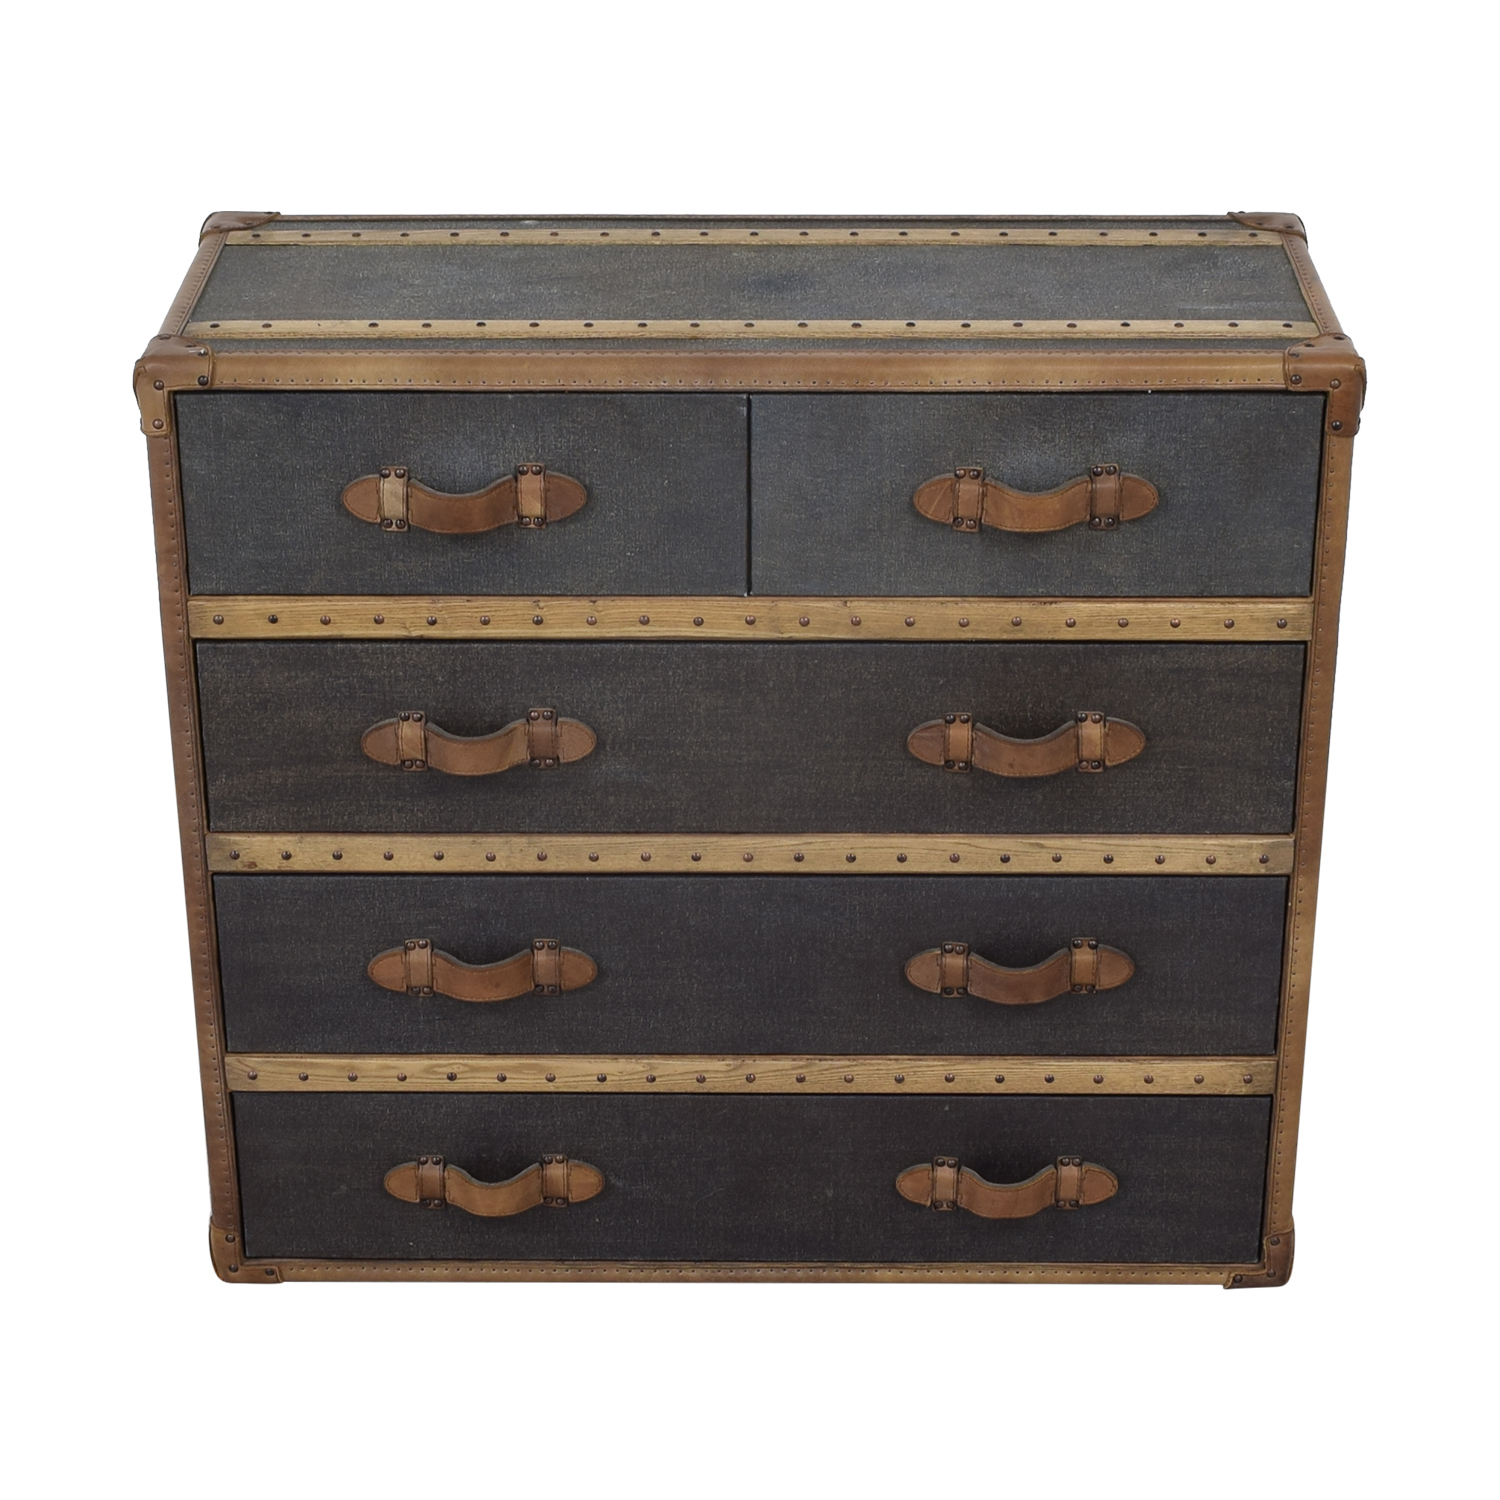 Restoration Hardware Four-Drawer Chest / Dressers